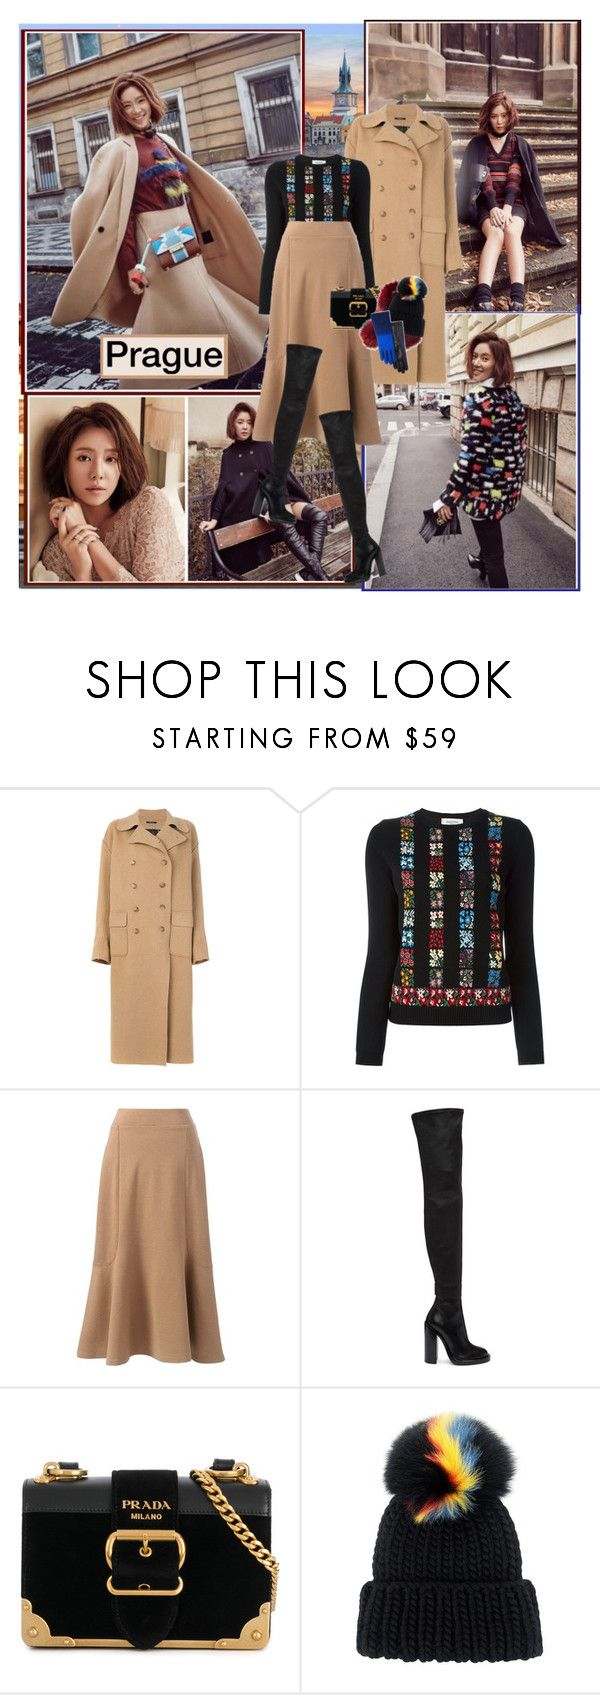 """Prague : )"" by thisiswhoireallyam7 ❤ liked on Polyvore featuring Bohemia, R13, Valentino, Lands' End, Ann Demeulemeester, Prada, Charlotte Simone, Eugenia Kim, Echo and plus size clothing"